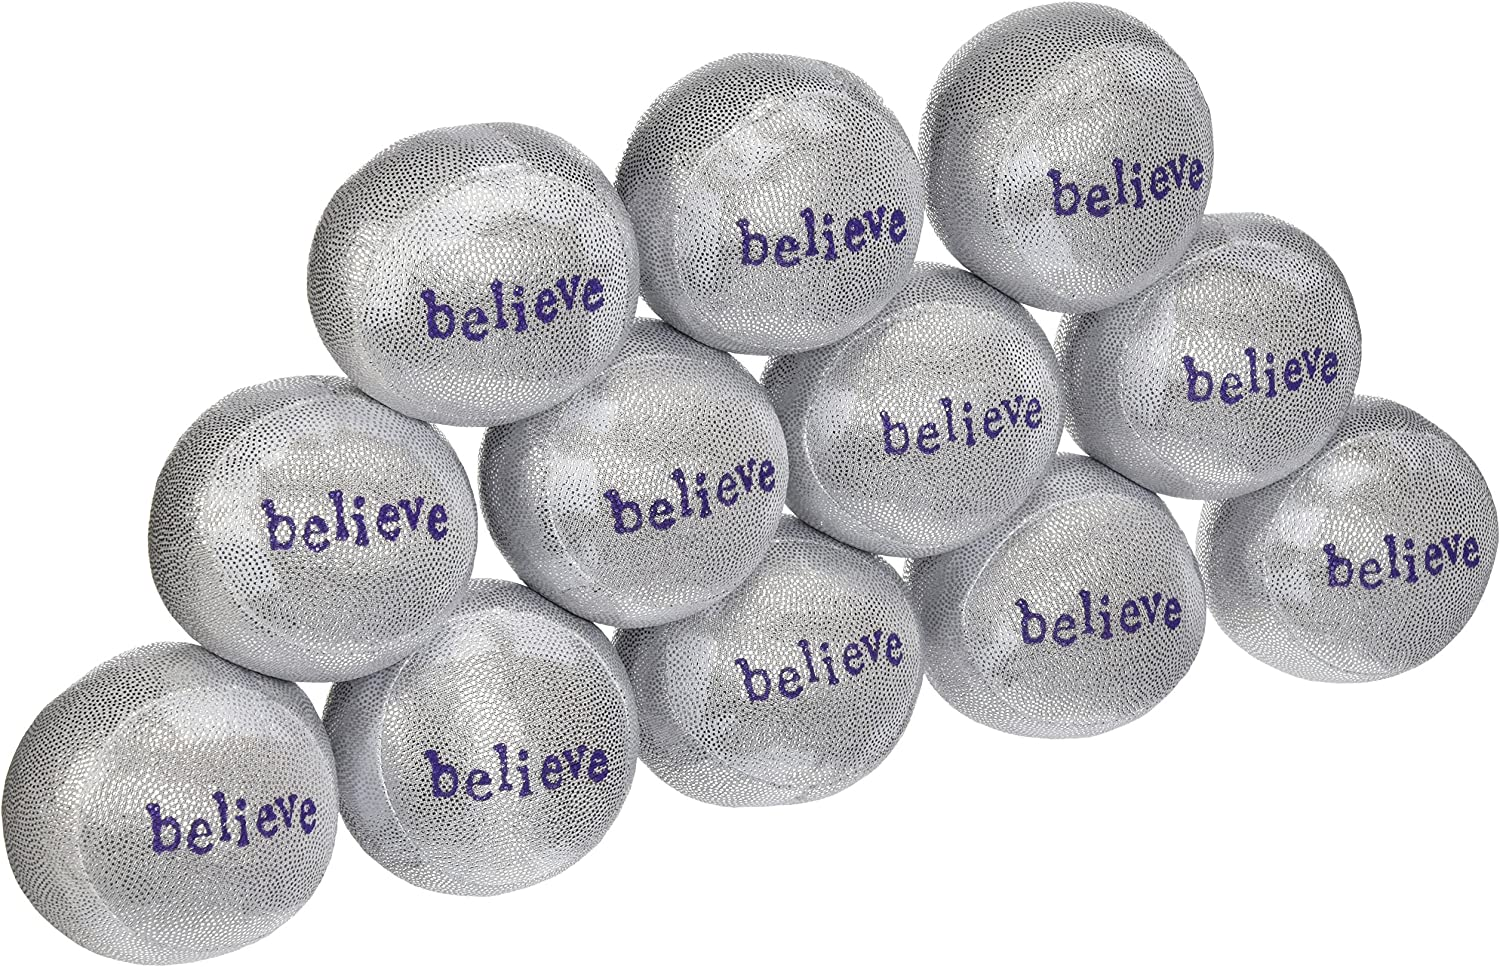 Lavender Luvies Stress Balls Silver - Believe Credence Pack Sale special price 12